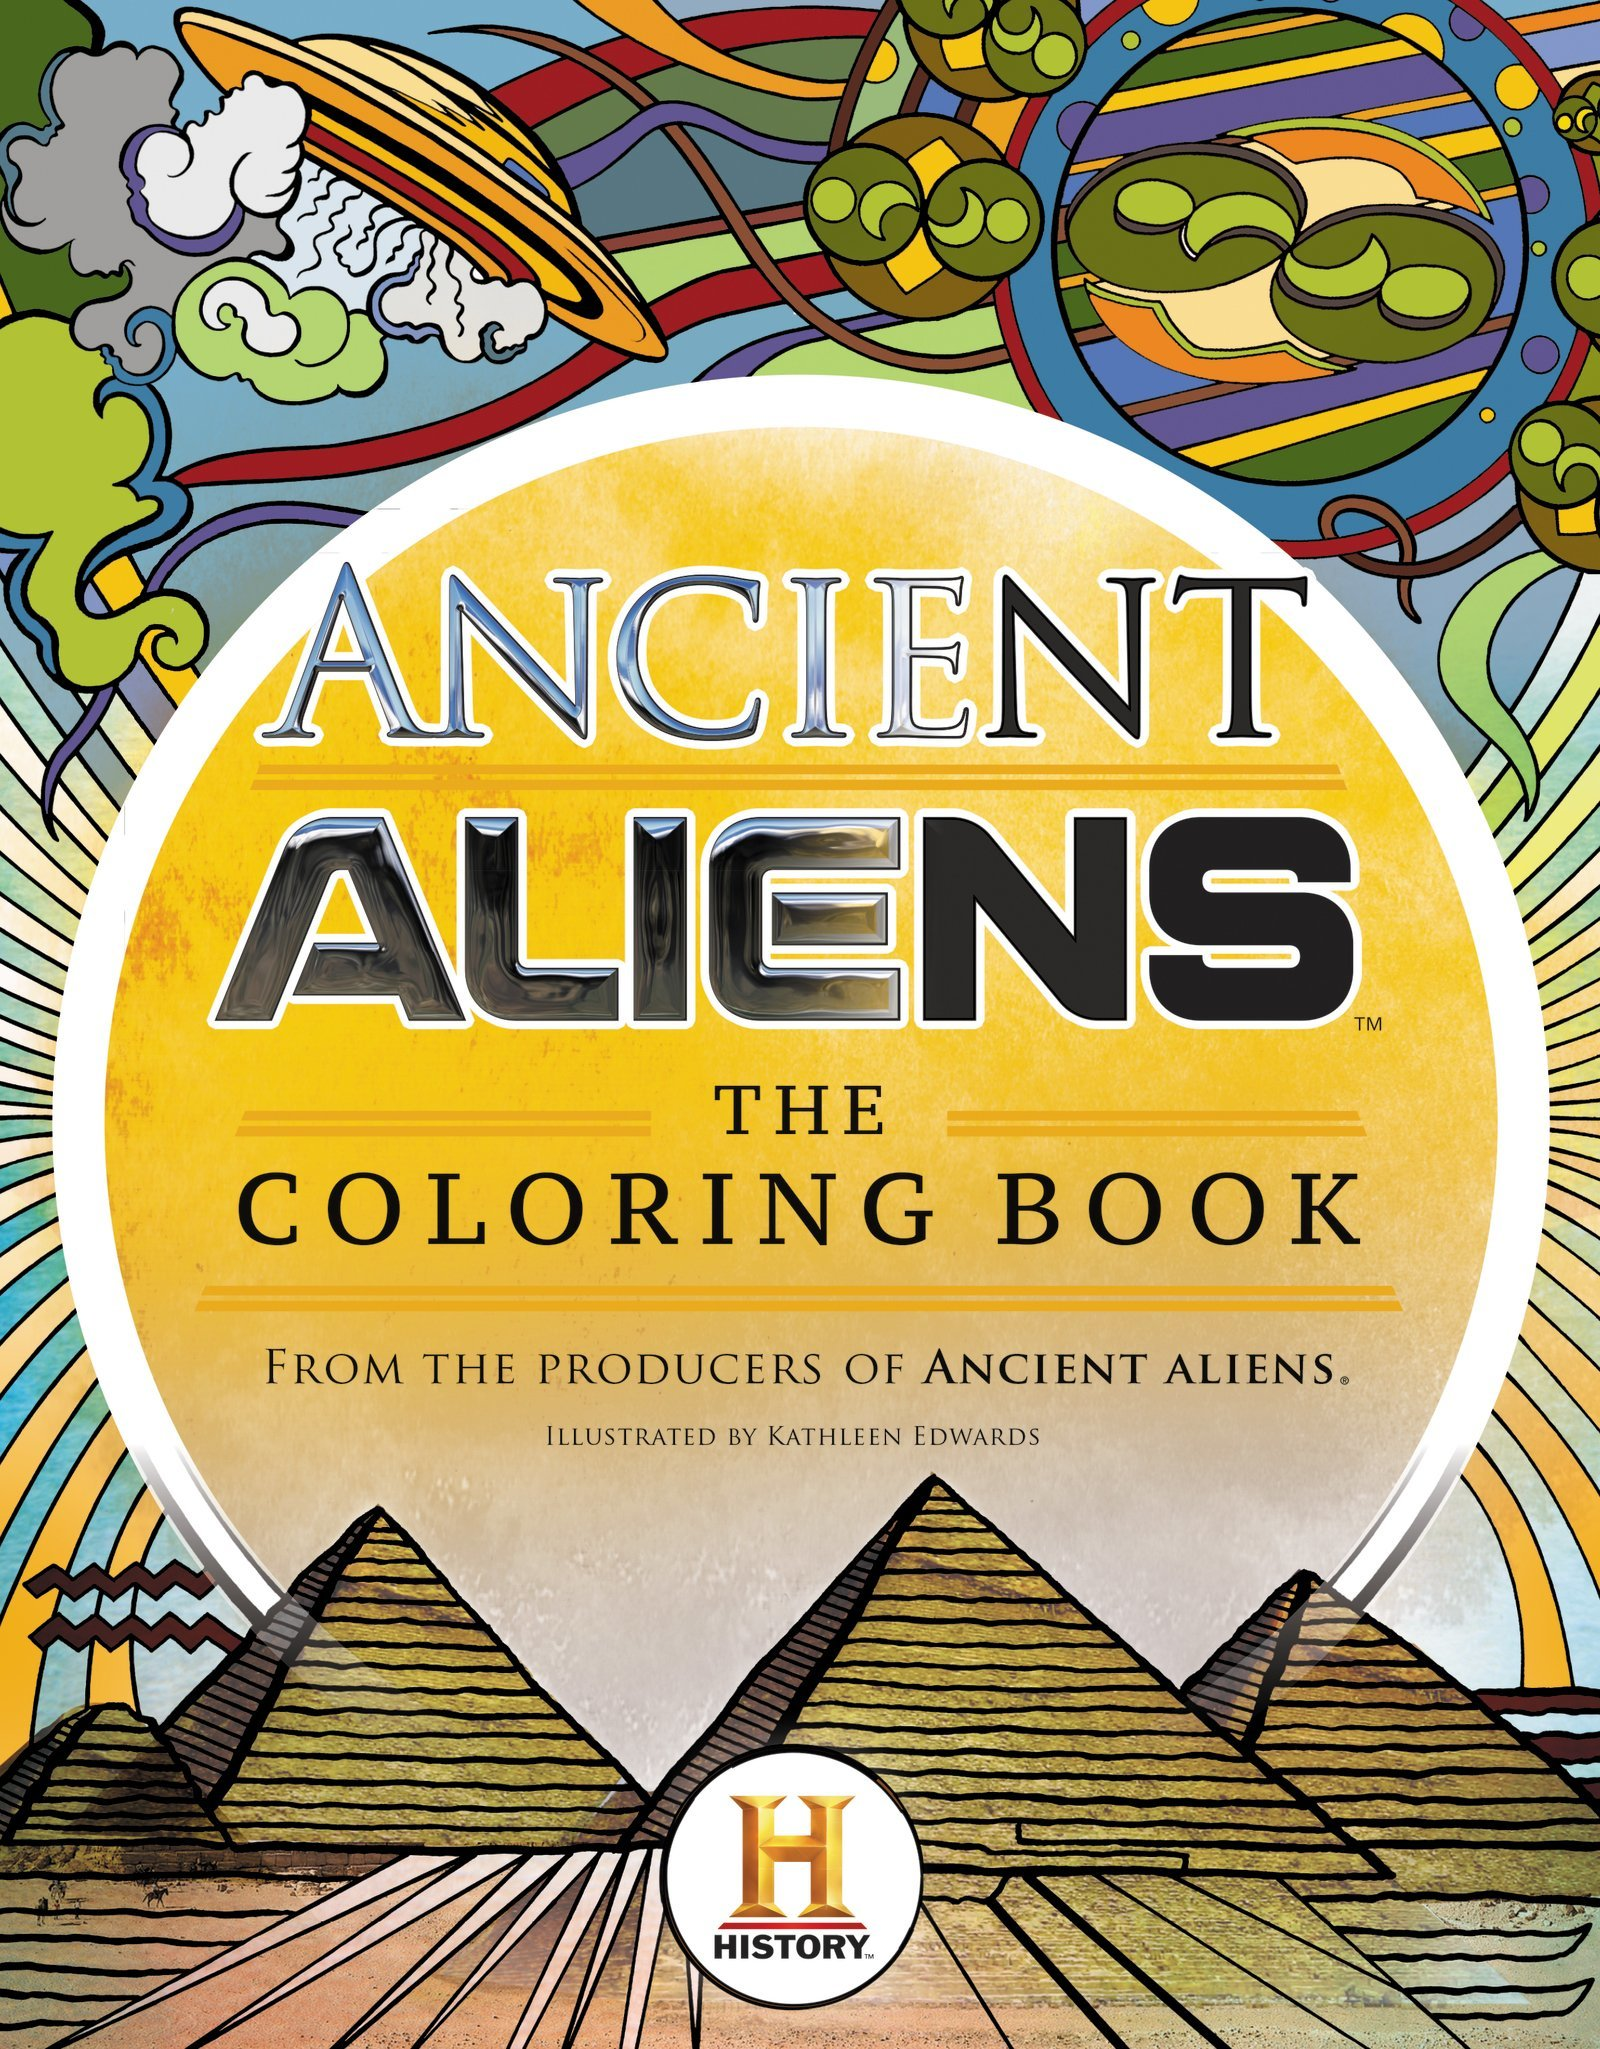 Ancient Aliens: The Coloring Book